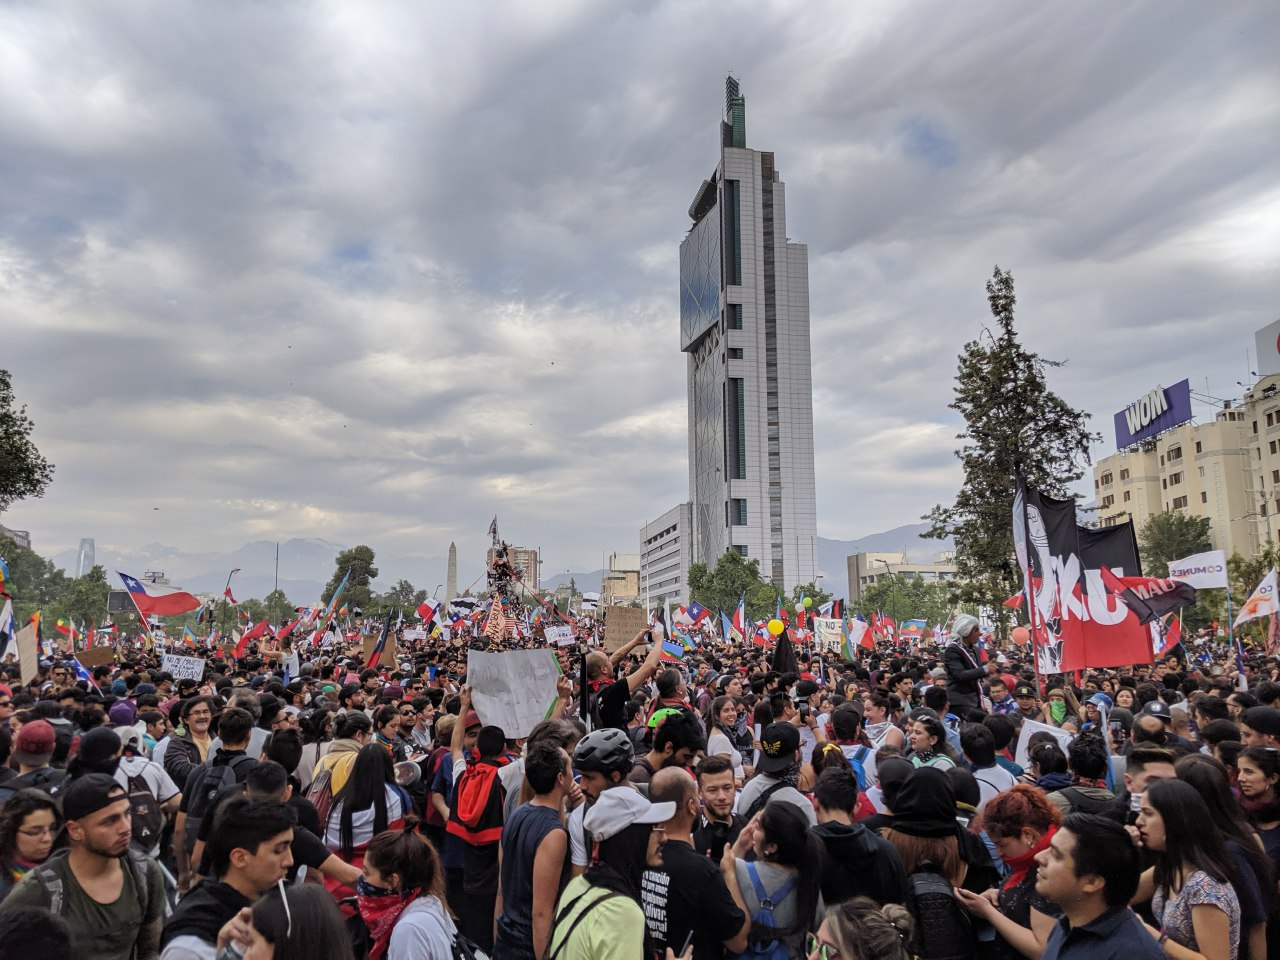 25/10/19, Protestas, Chile, Fotos, 2019